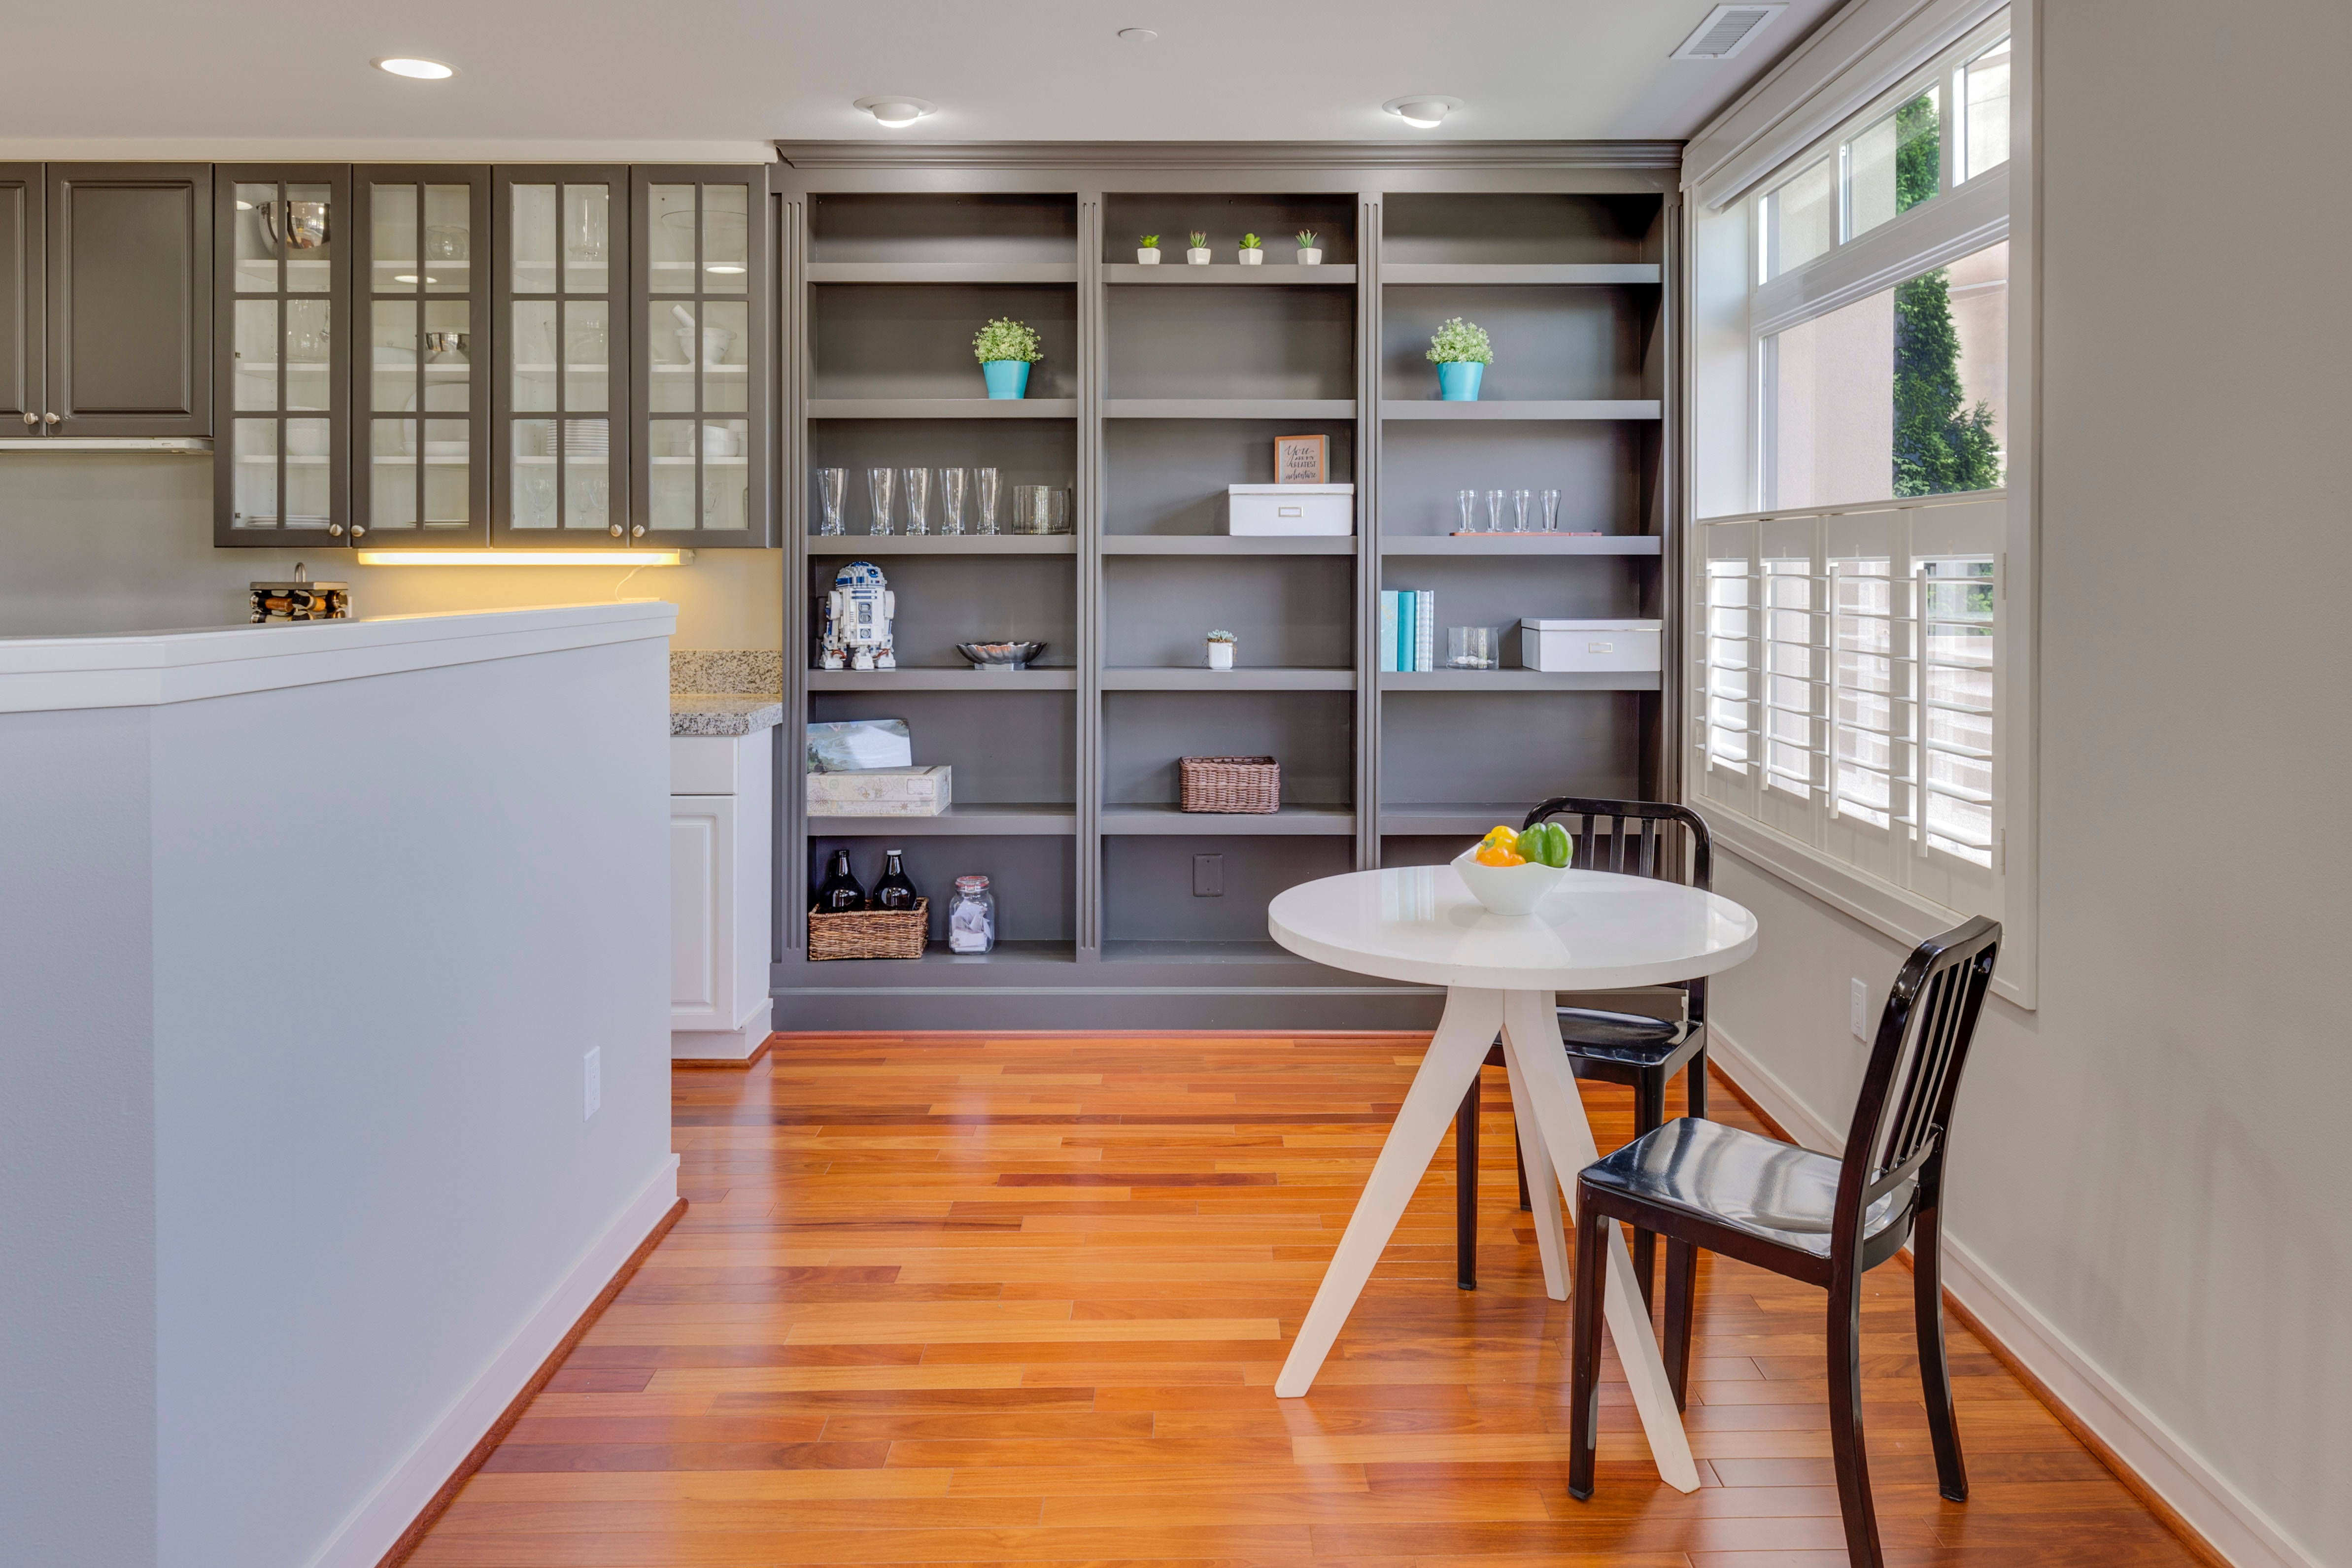 Double the home value: Custom millwork and major renovations